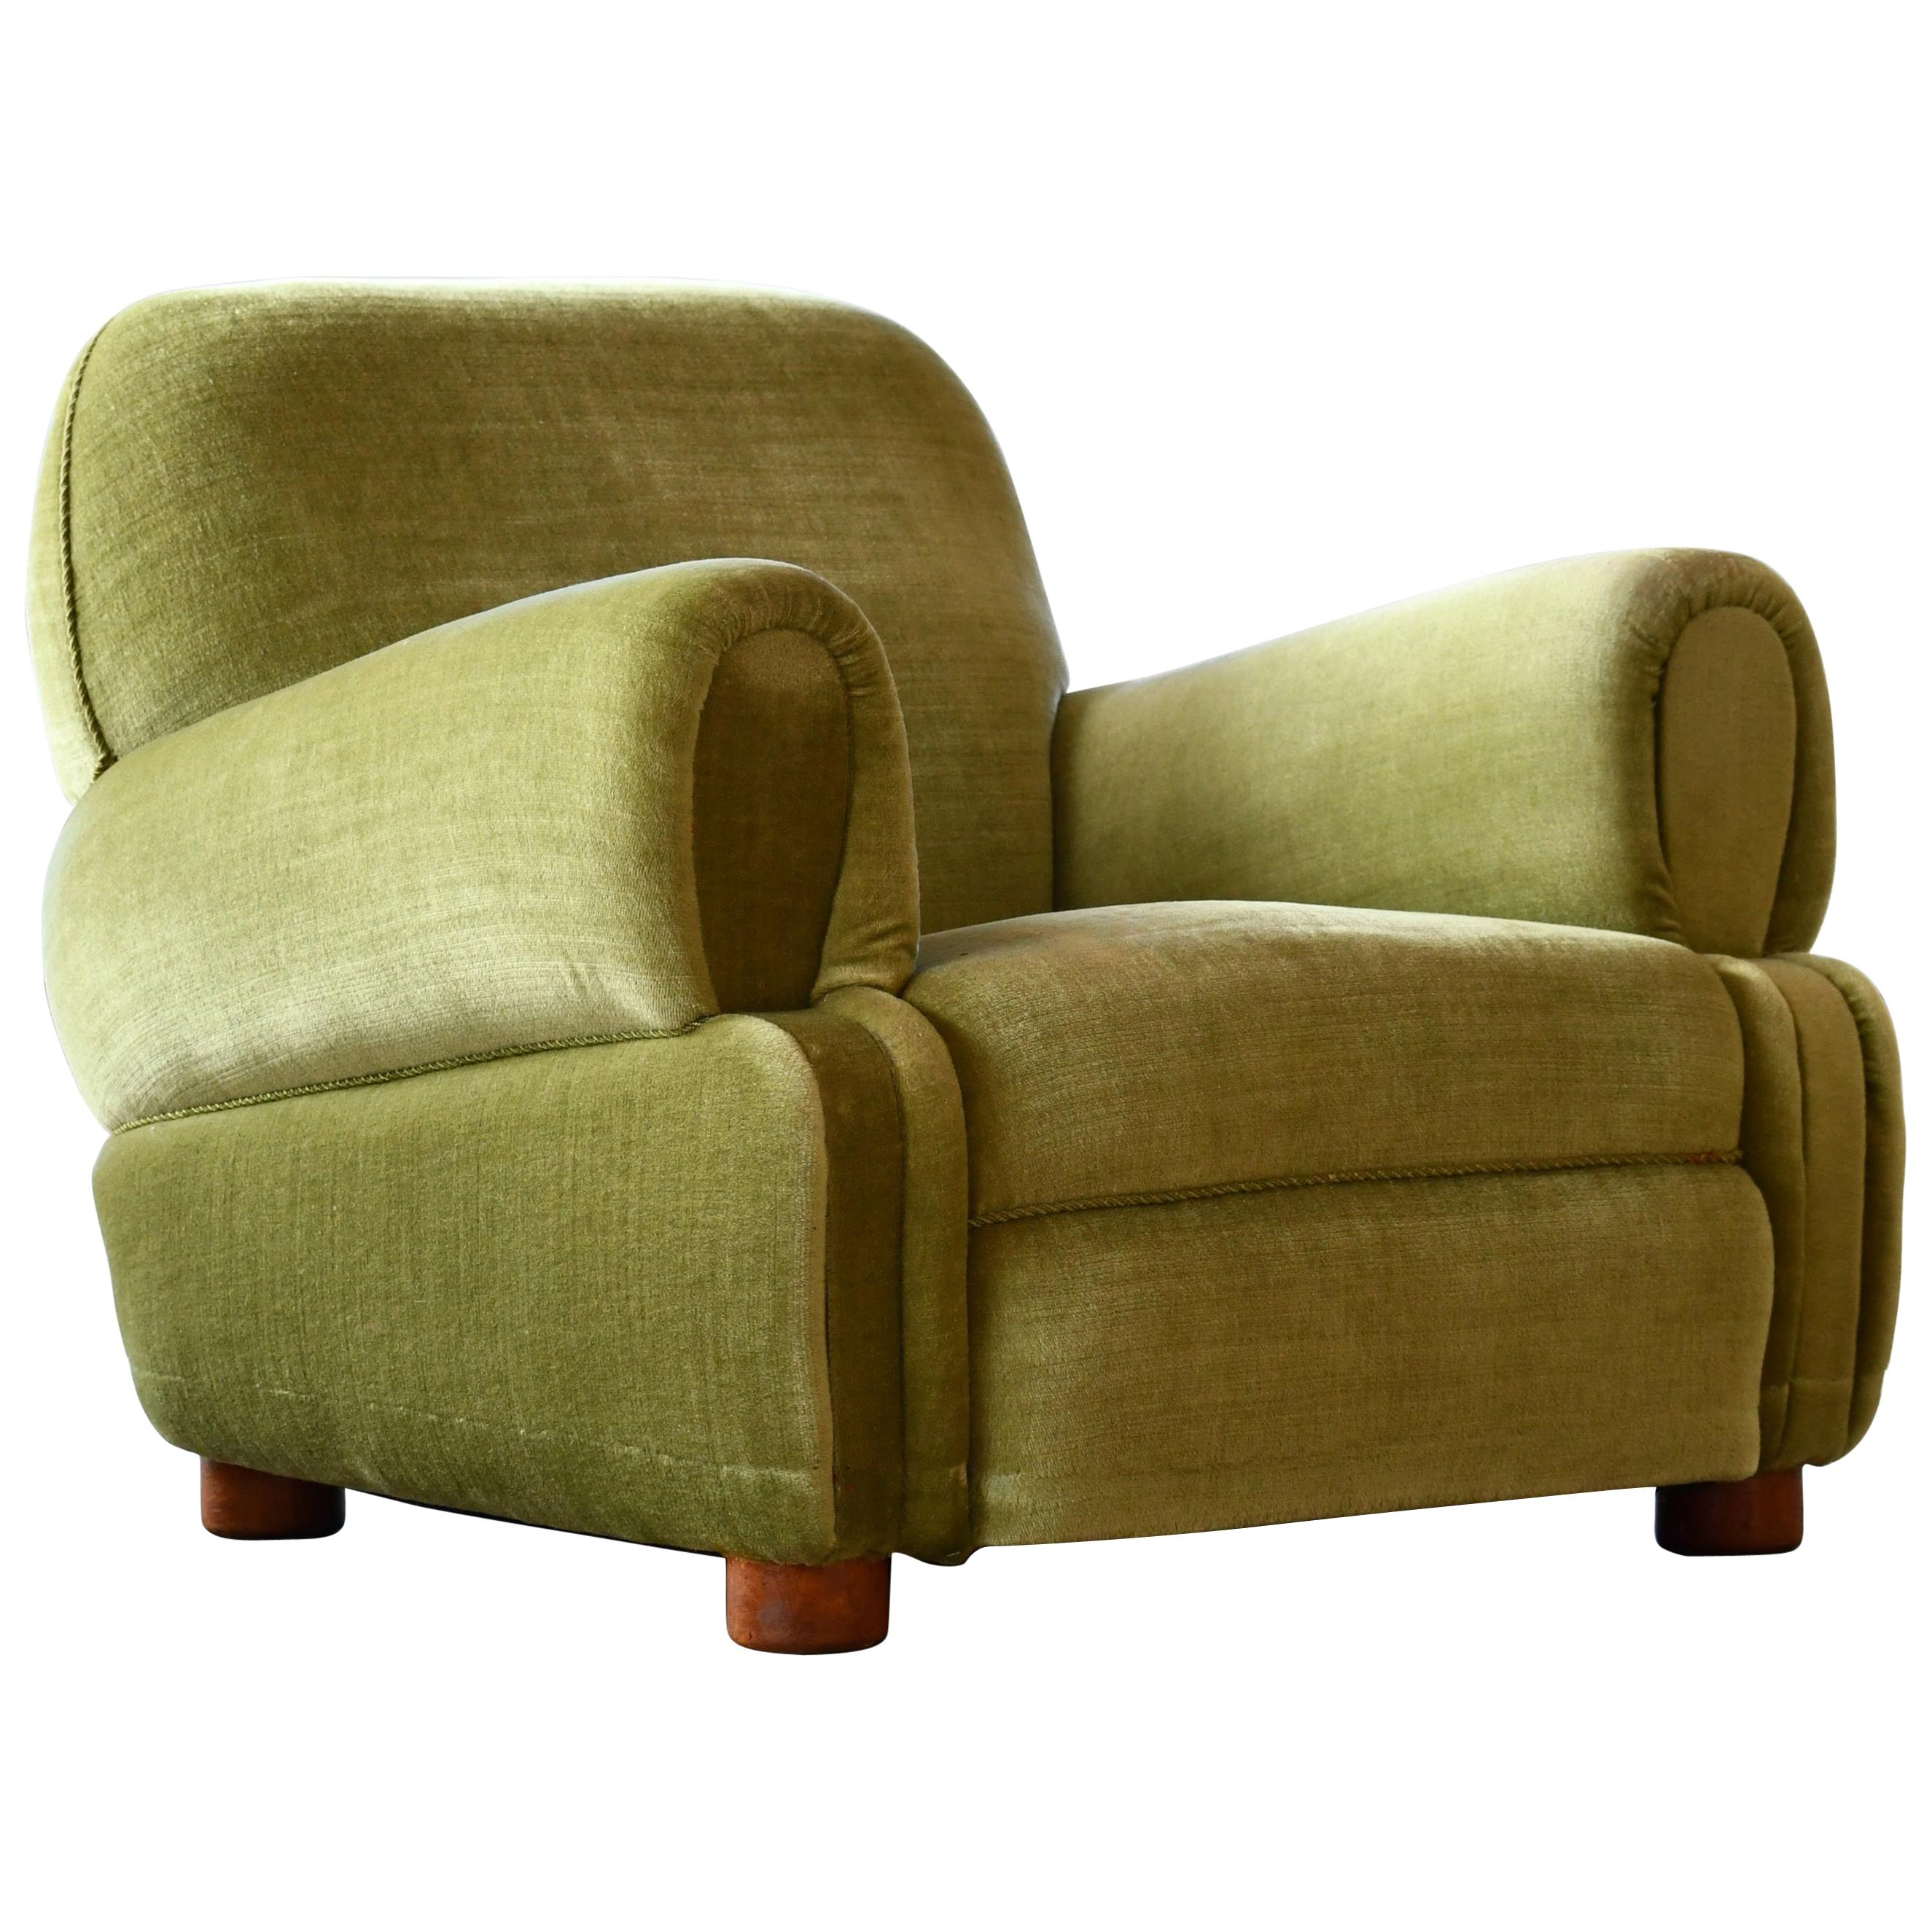 Danish 1940's Low Large Scale Club Chair in Green Mohair